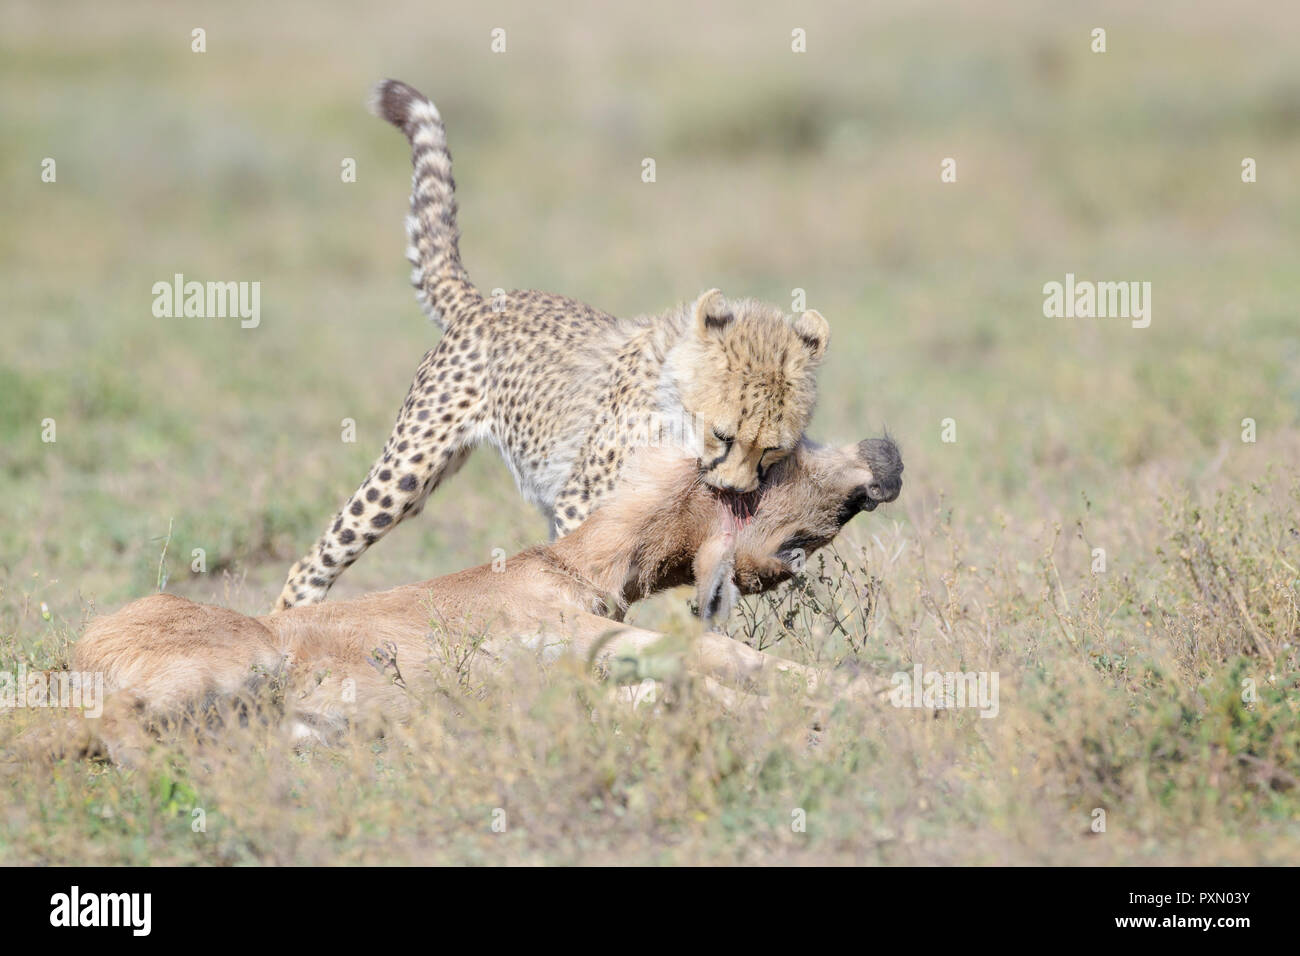 Cheetah (Acinonyx jubatus) cub killing a just by the mother hunted blue wildebeest (Connochaetes taurinus) calf, Ngorongoro conservation area, Tanzani Stock Photo